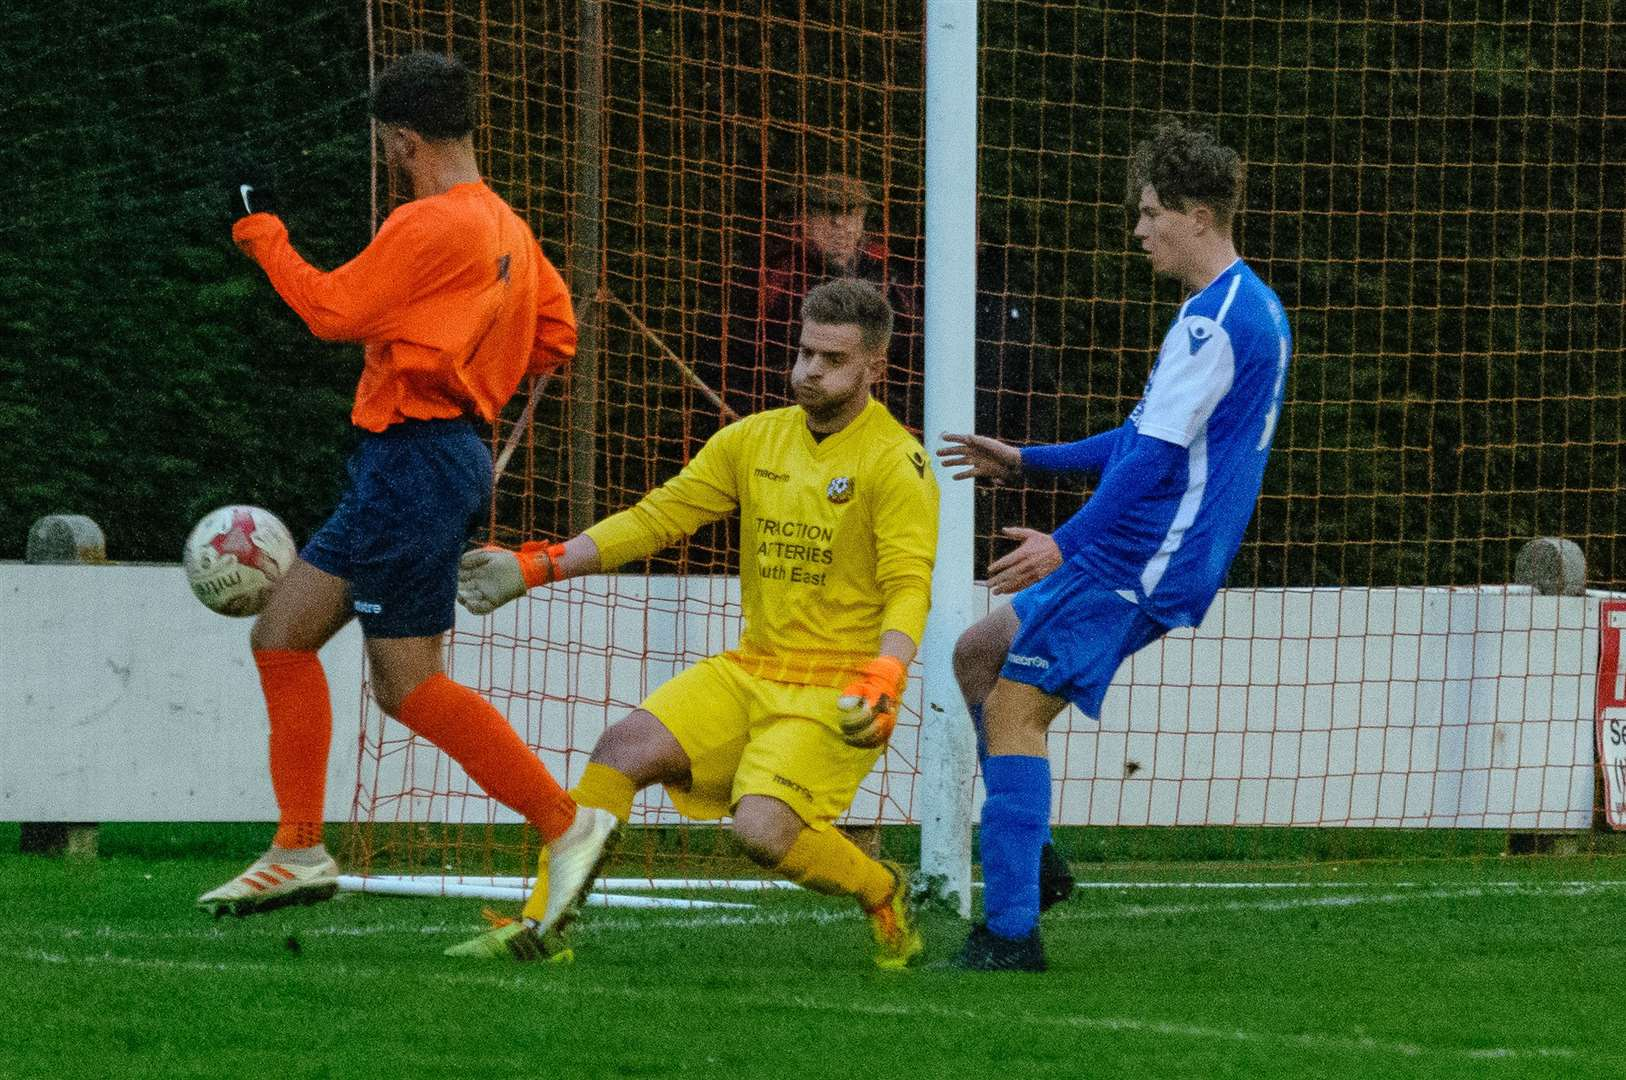 Football action from Diss Town v Cornard United - Cornard Goal Keeper Matthew Grove..Picture by Mark Bullimore Photography. (9461773)